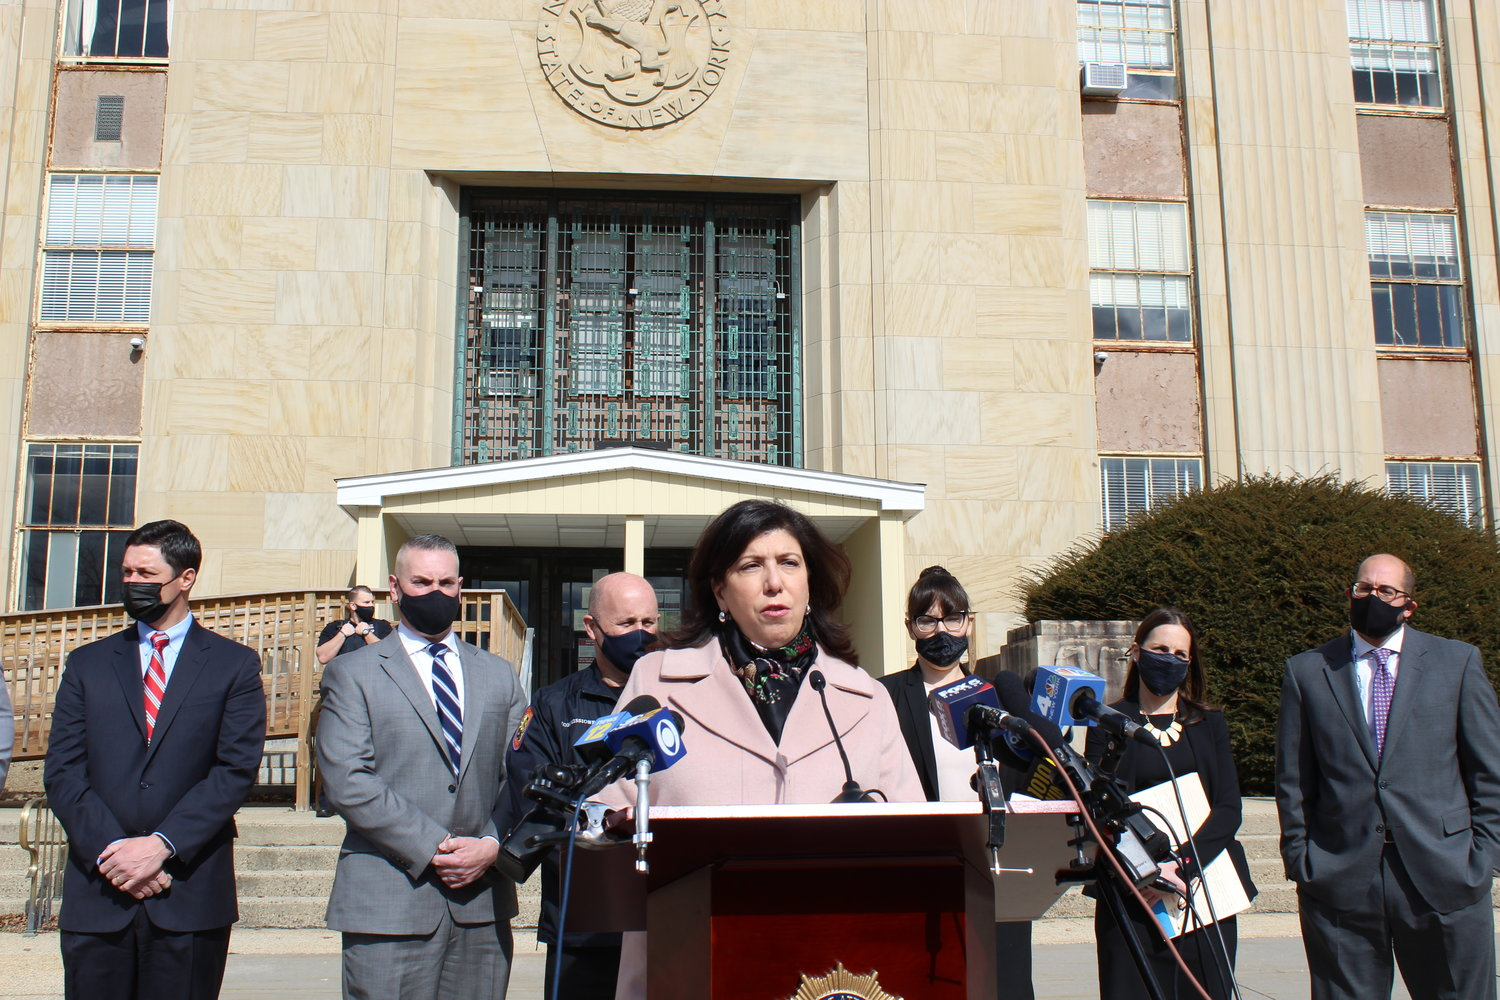 Nassau County District Attorney Madeline Singas said Blatti prescribed opioids up to nine times the daily allowable dosage.